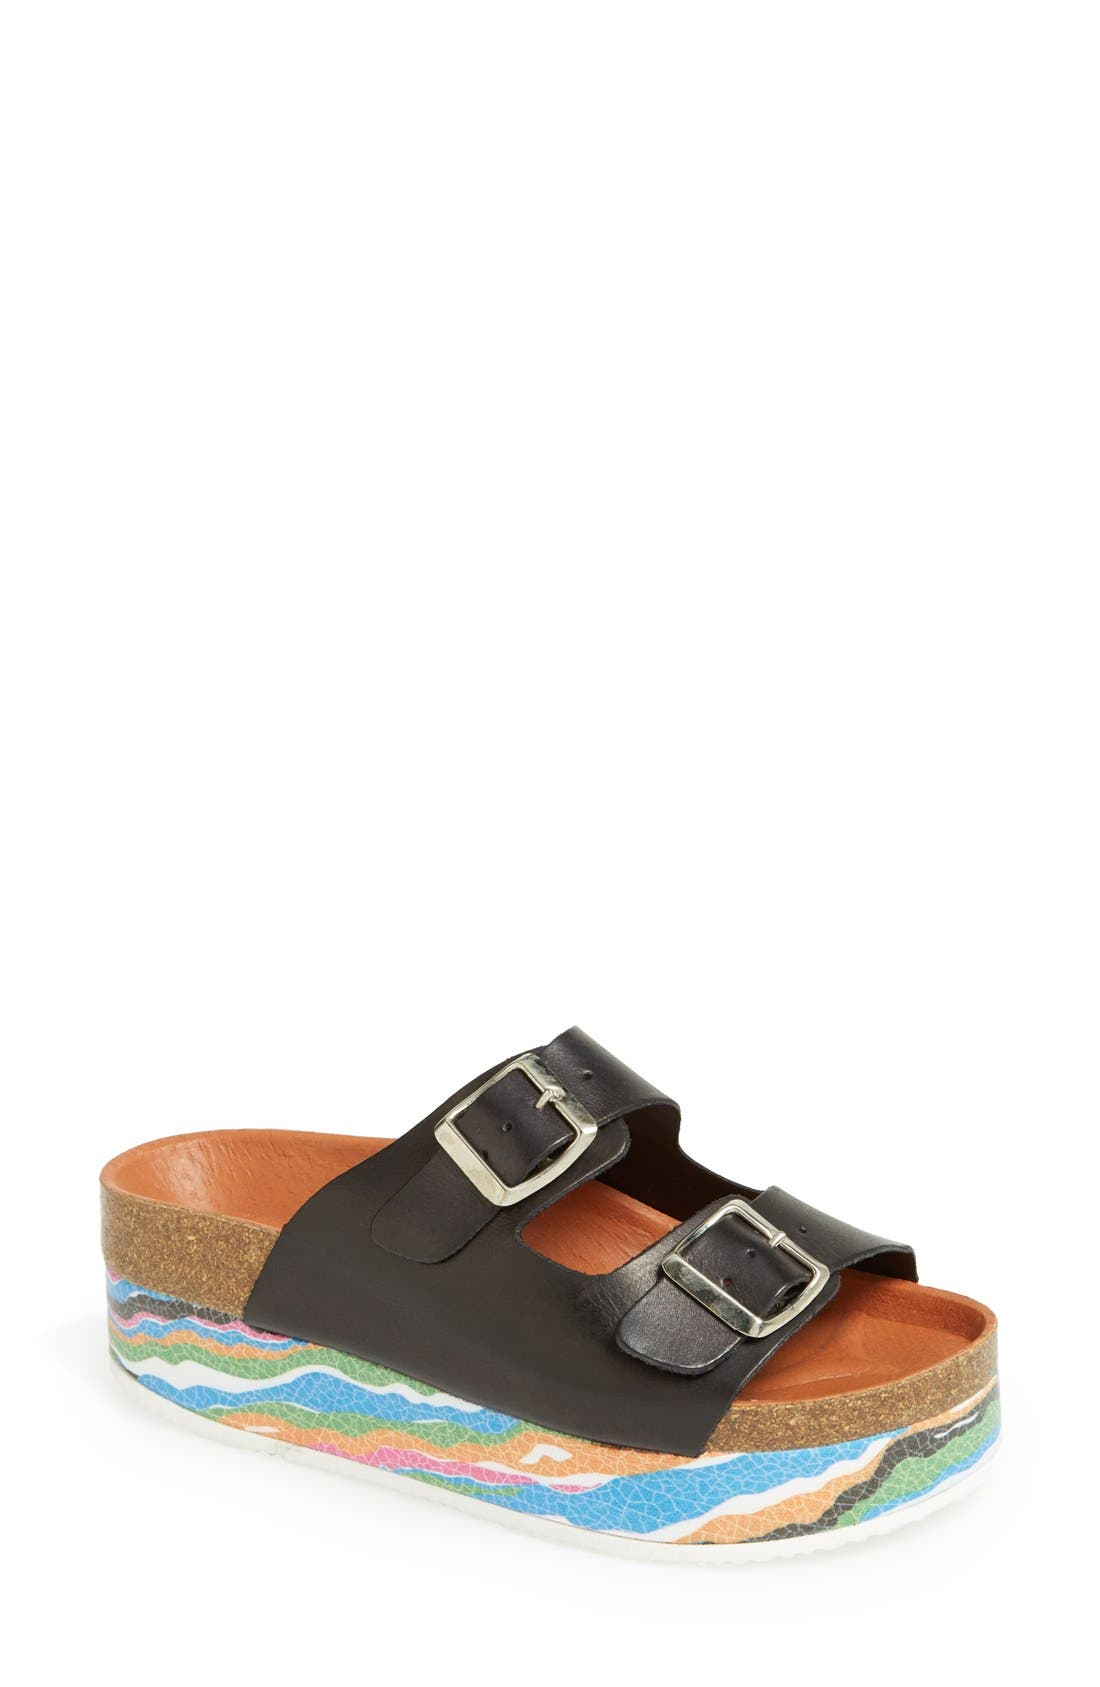 Alternate Image 1 Selected - SIXTYSEVEN 'Cara' Sandal